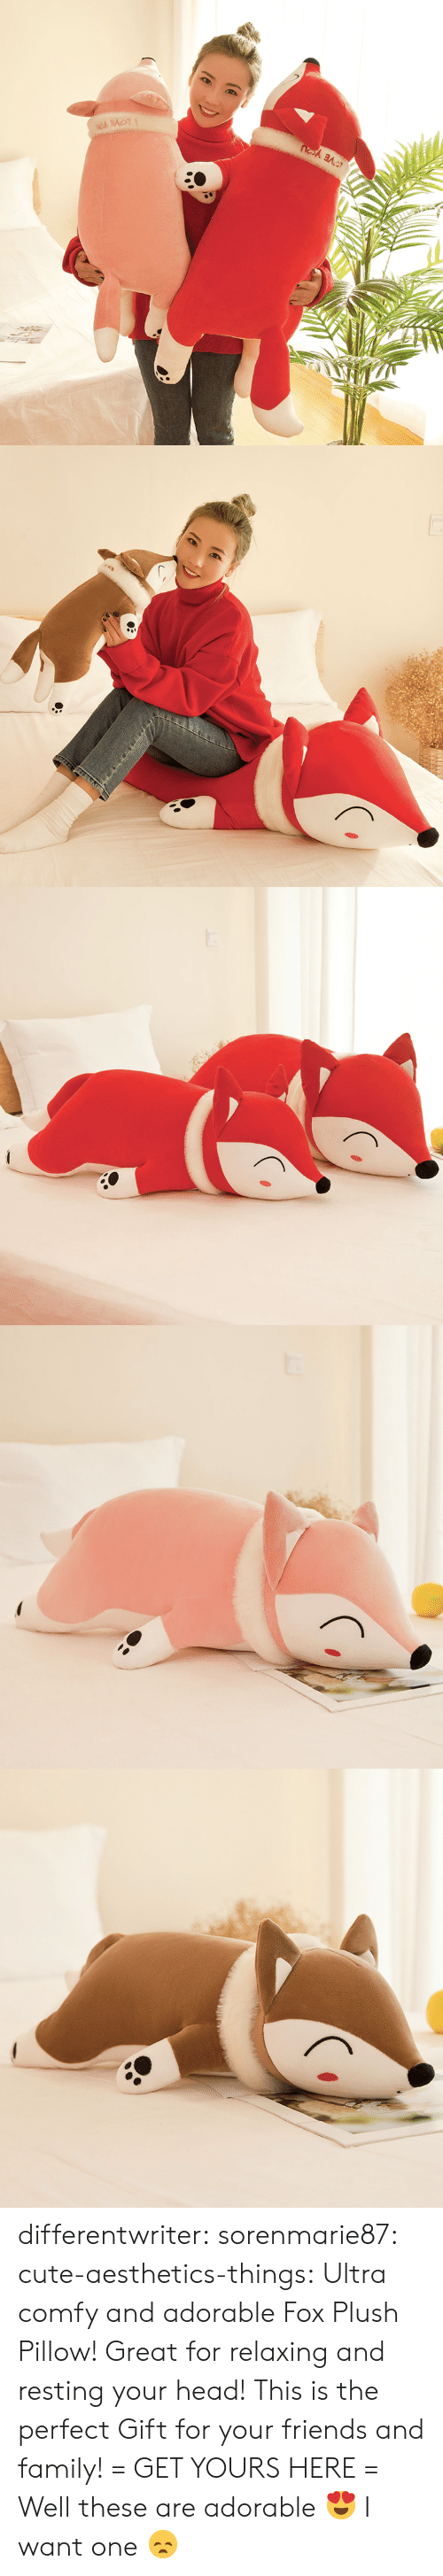 Cute, Family, and Friends: differentwriter:  sorenmarie87:  cute-aesthetics-things:  Ultra comfy and adorable Fox Plush Pillow! Great for relaxing and resting your head! This is the perfect Gift for your friends and family! = GET YOURS HERE =   Well these are adorable 😍  I want one 😞